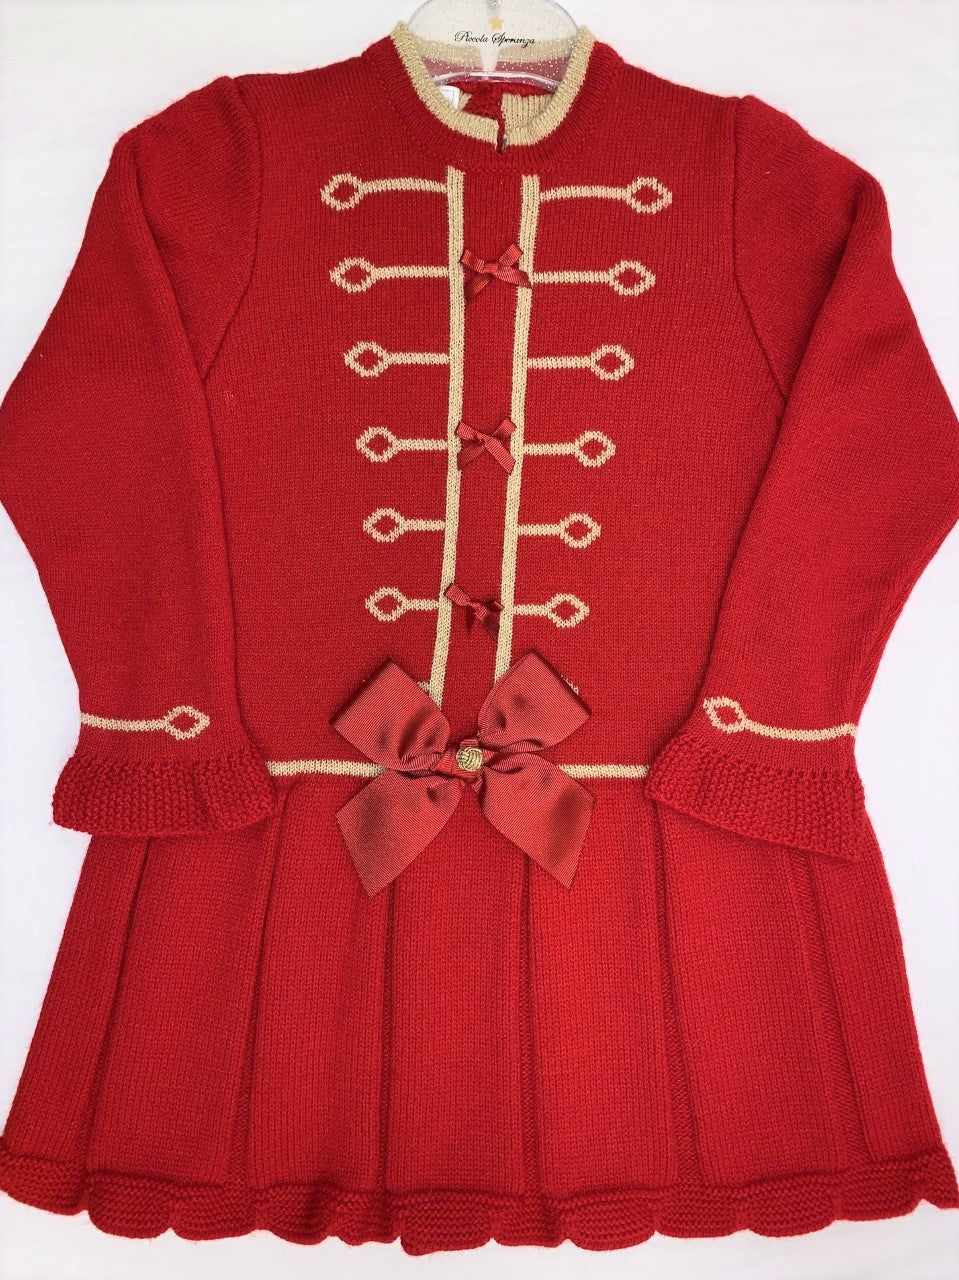 Carmen Taberner Girls Red Royal Wool Dress